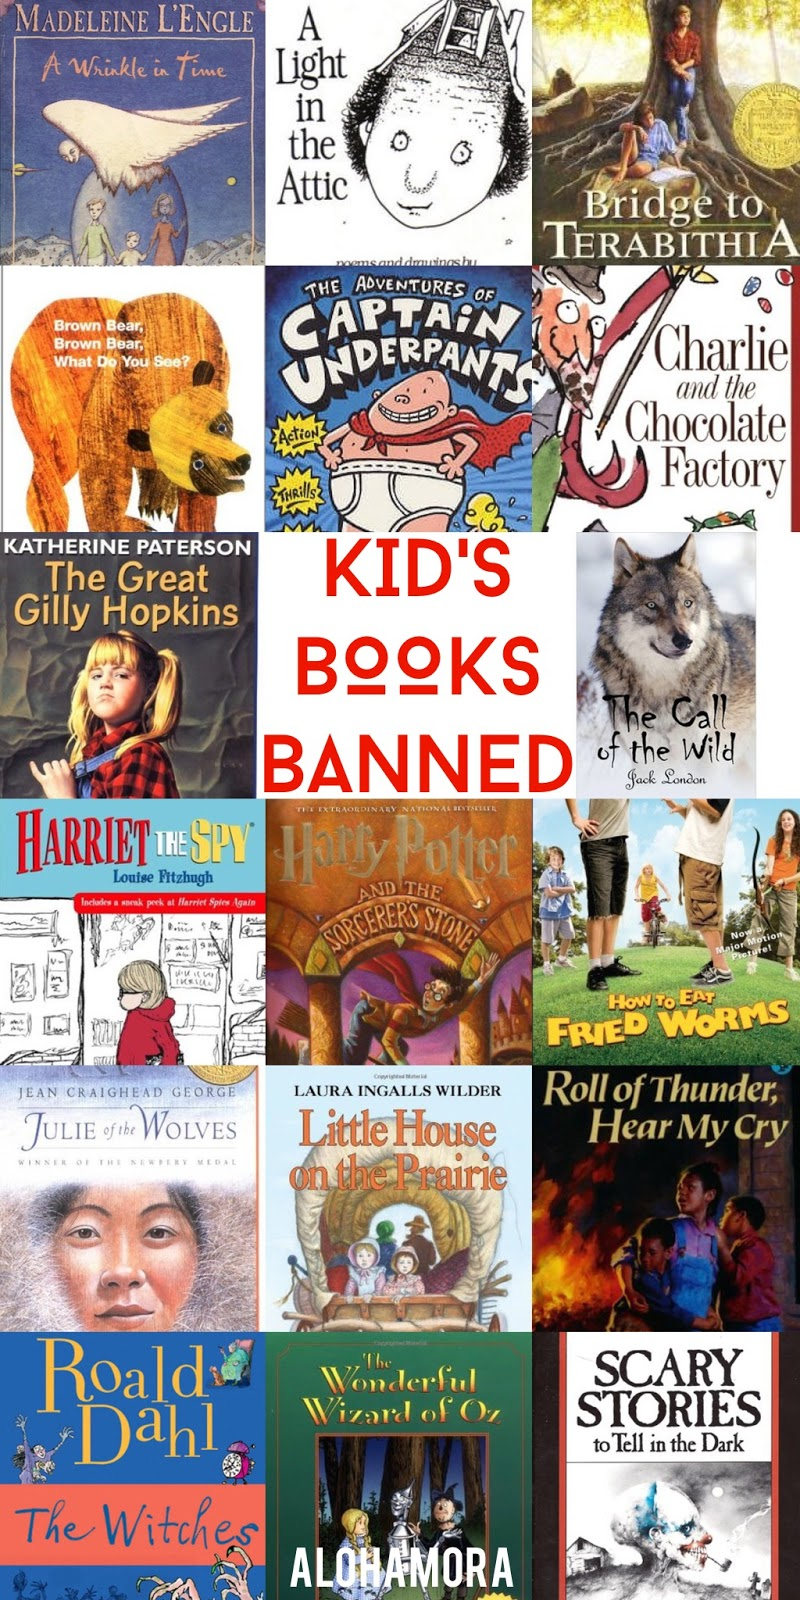 alohamora: open a book: even children's books are banned- banned